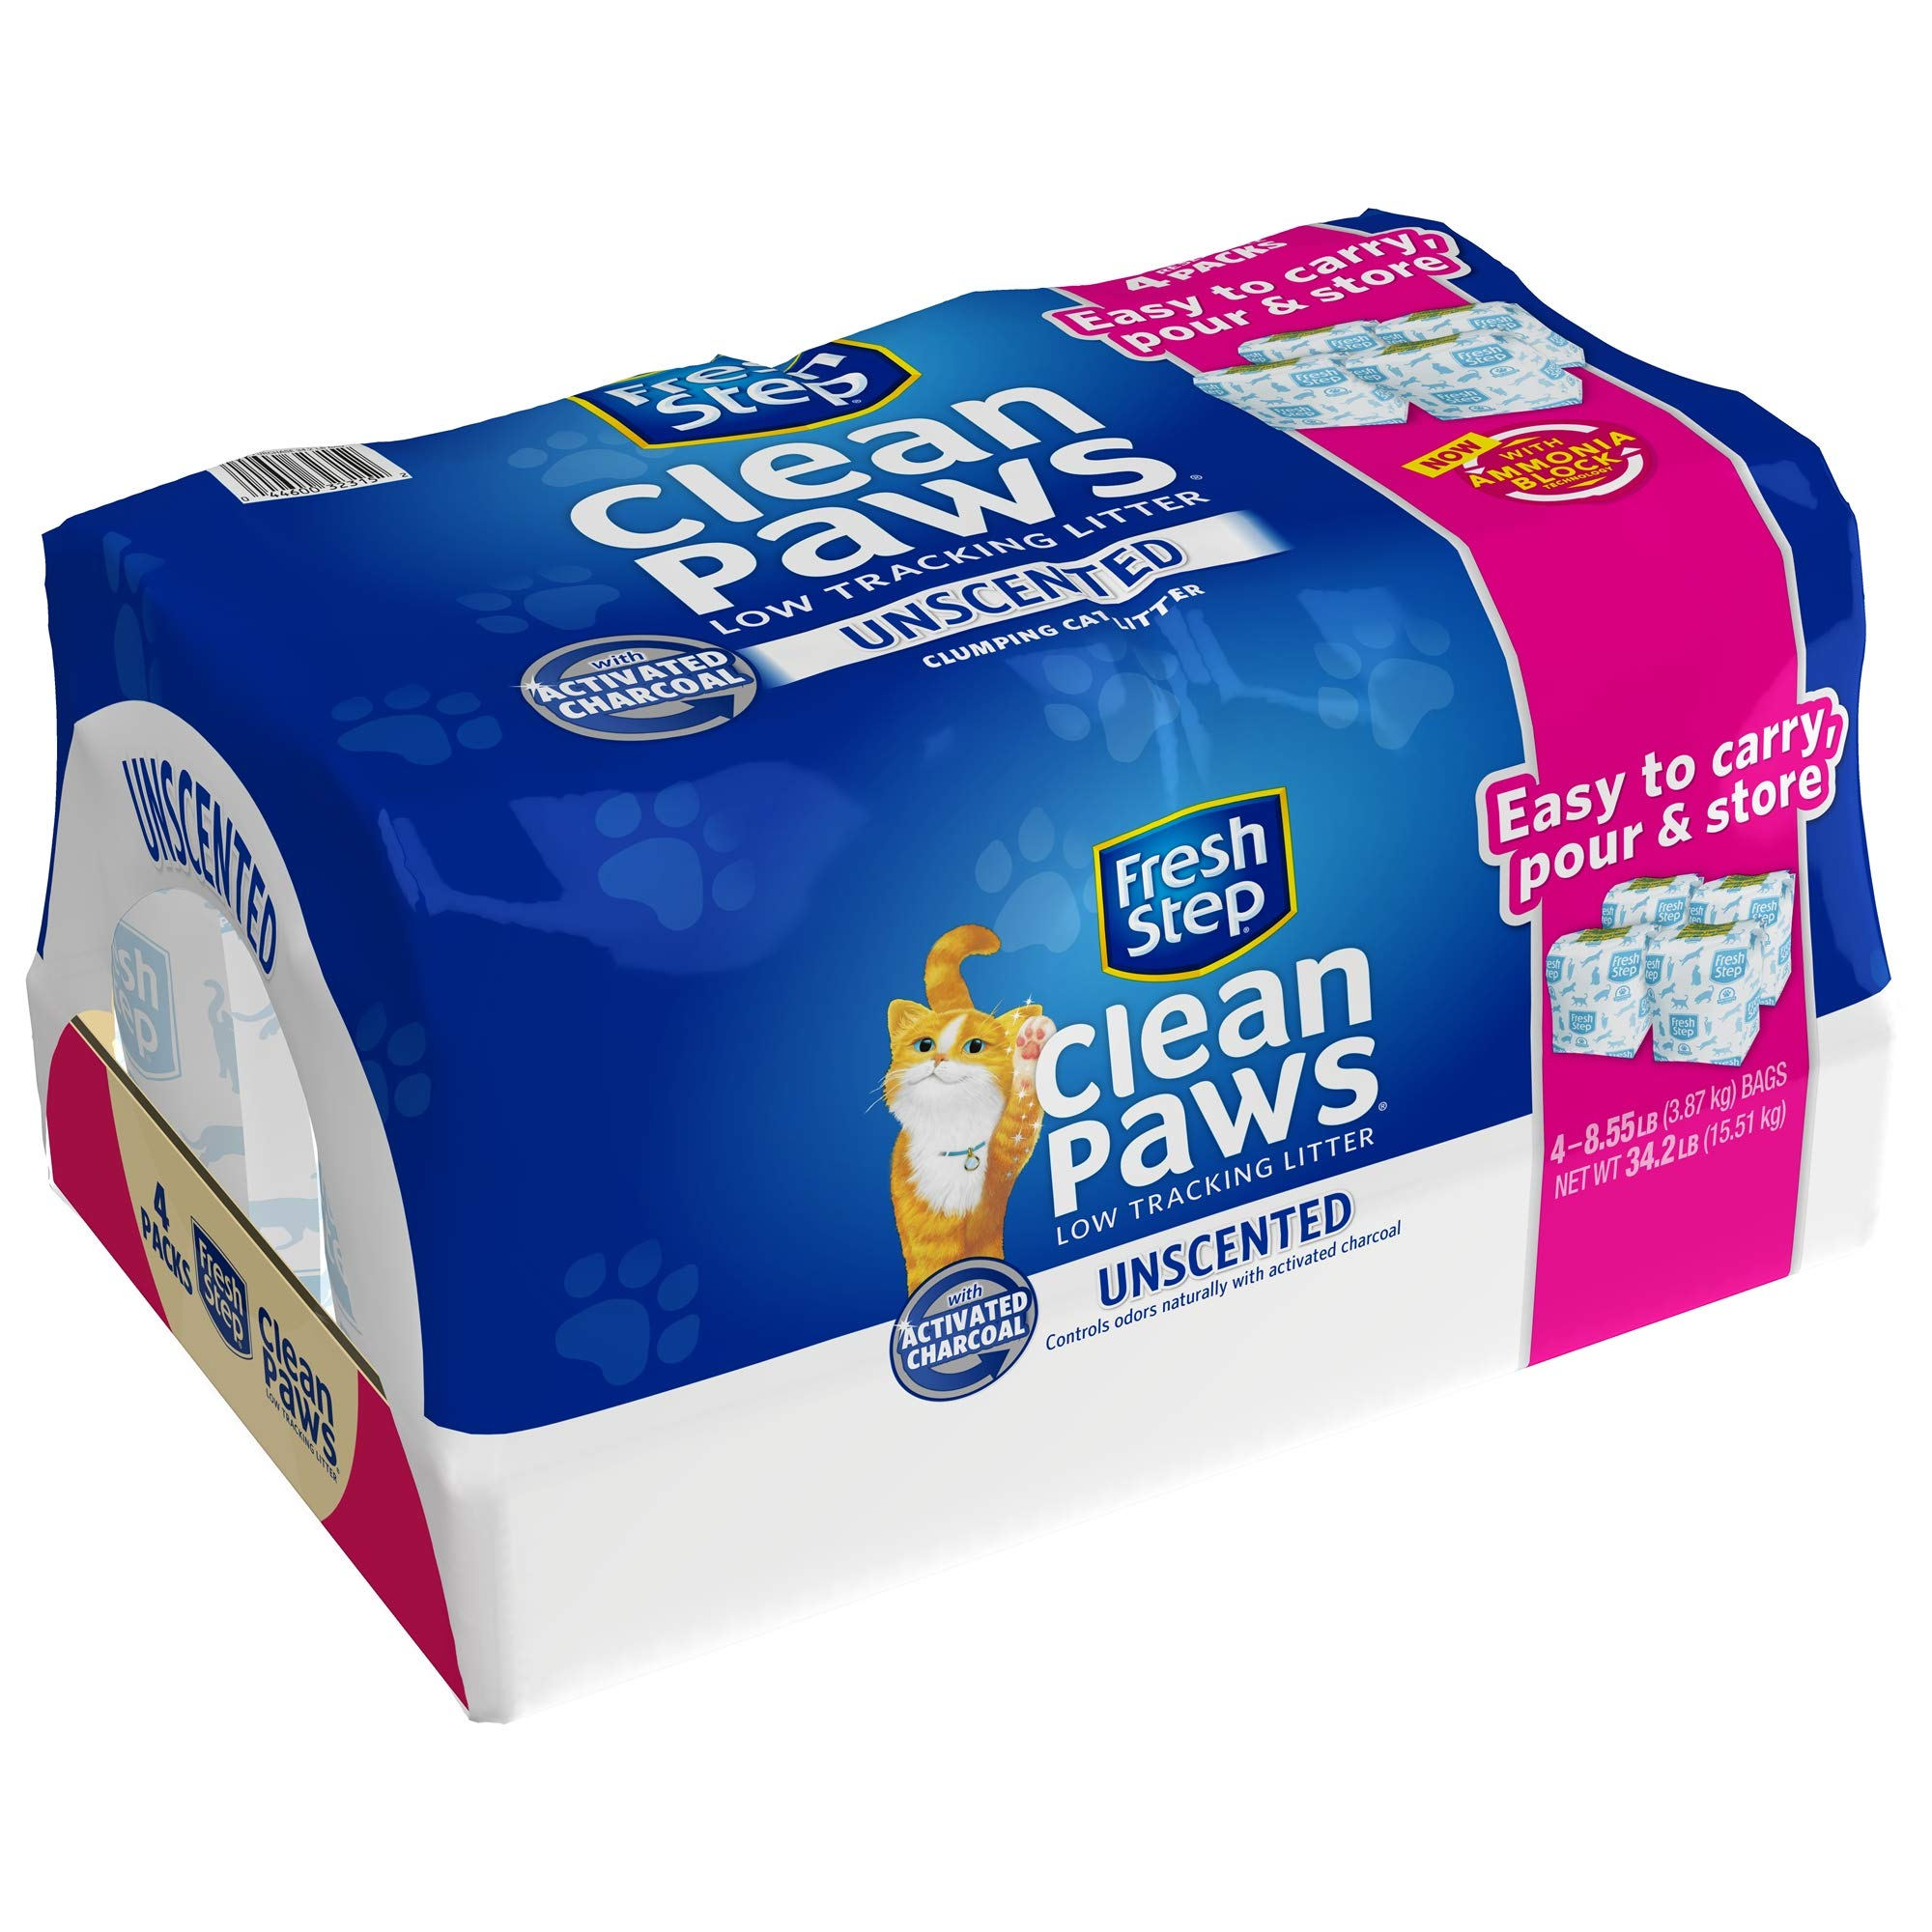 Fresh Step Clean Paws Unscented Low Tracking Clumping Cat Litter, 34.2 pounds, Grey by FRESH STEP